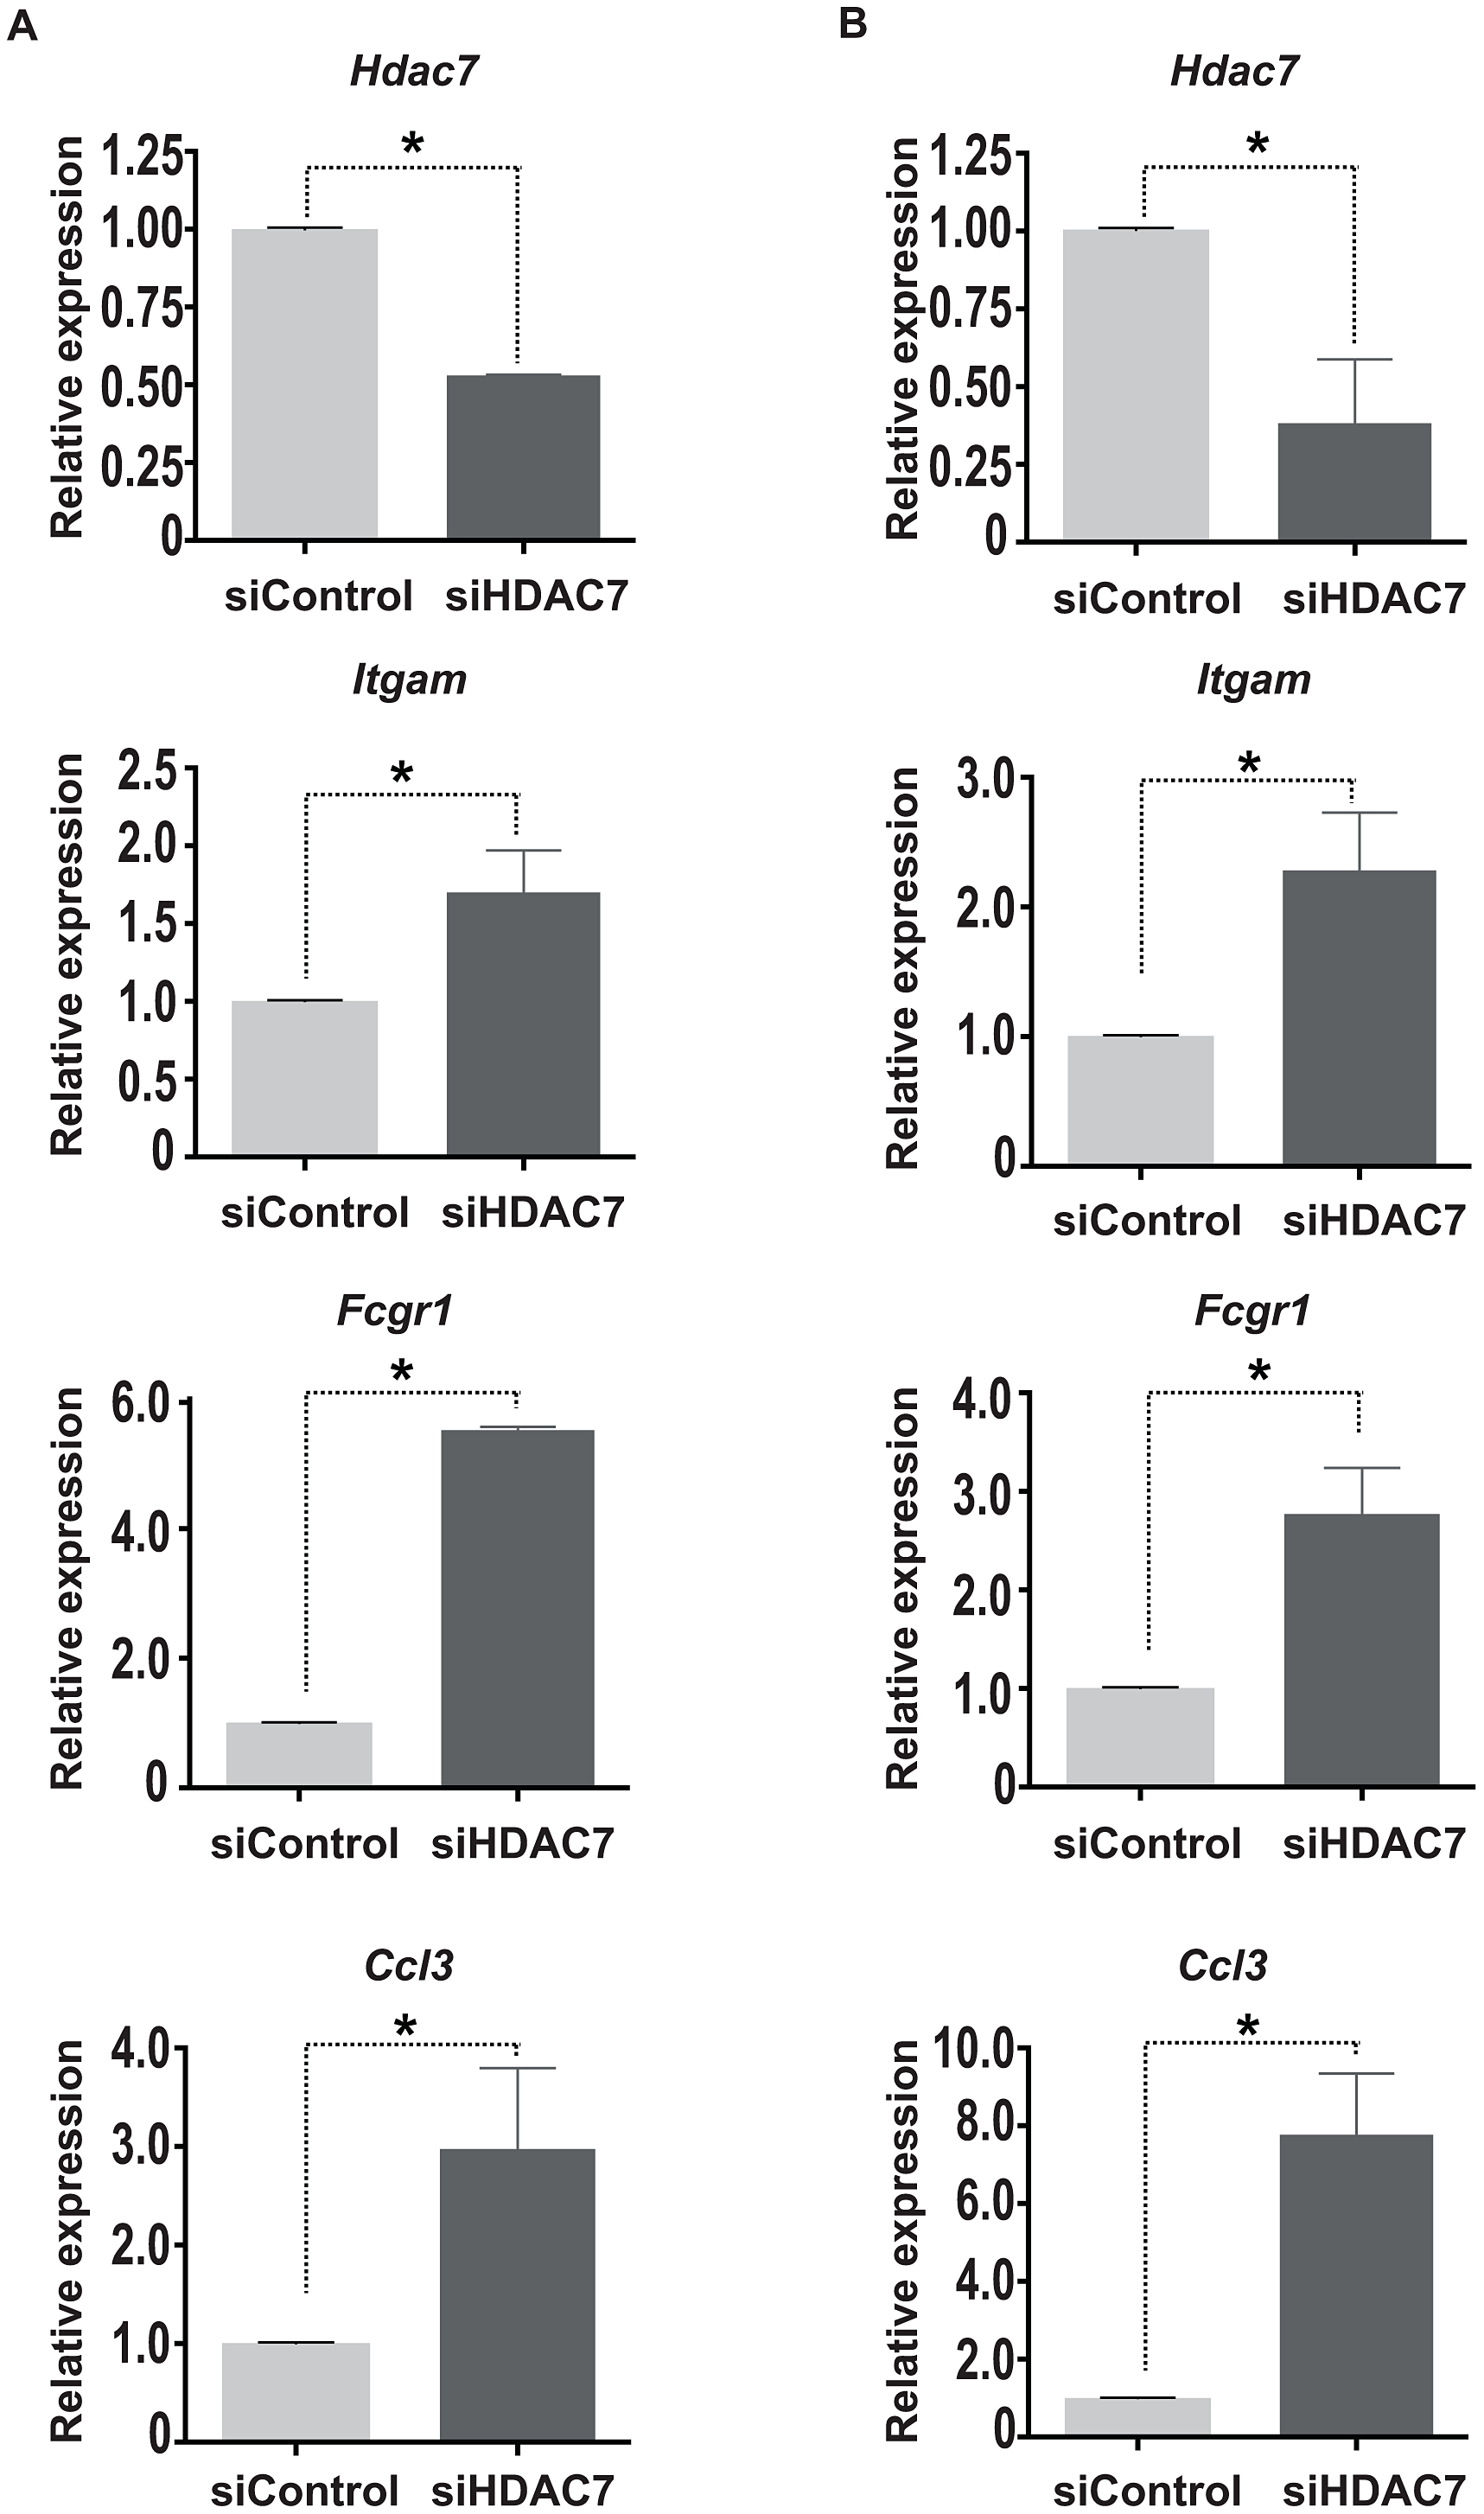 HDAC7 knock down leads to the de-repression of macrophage genes.